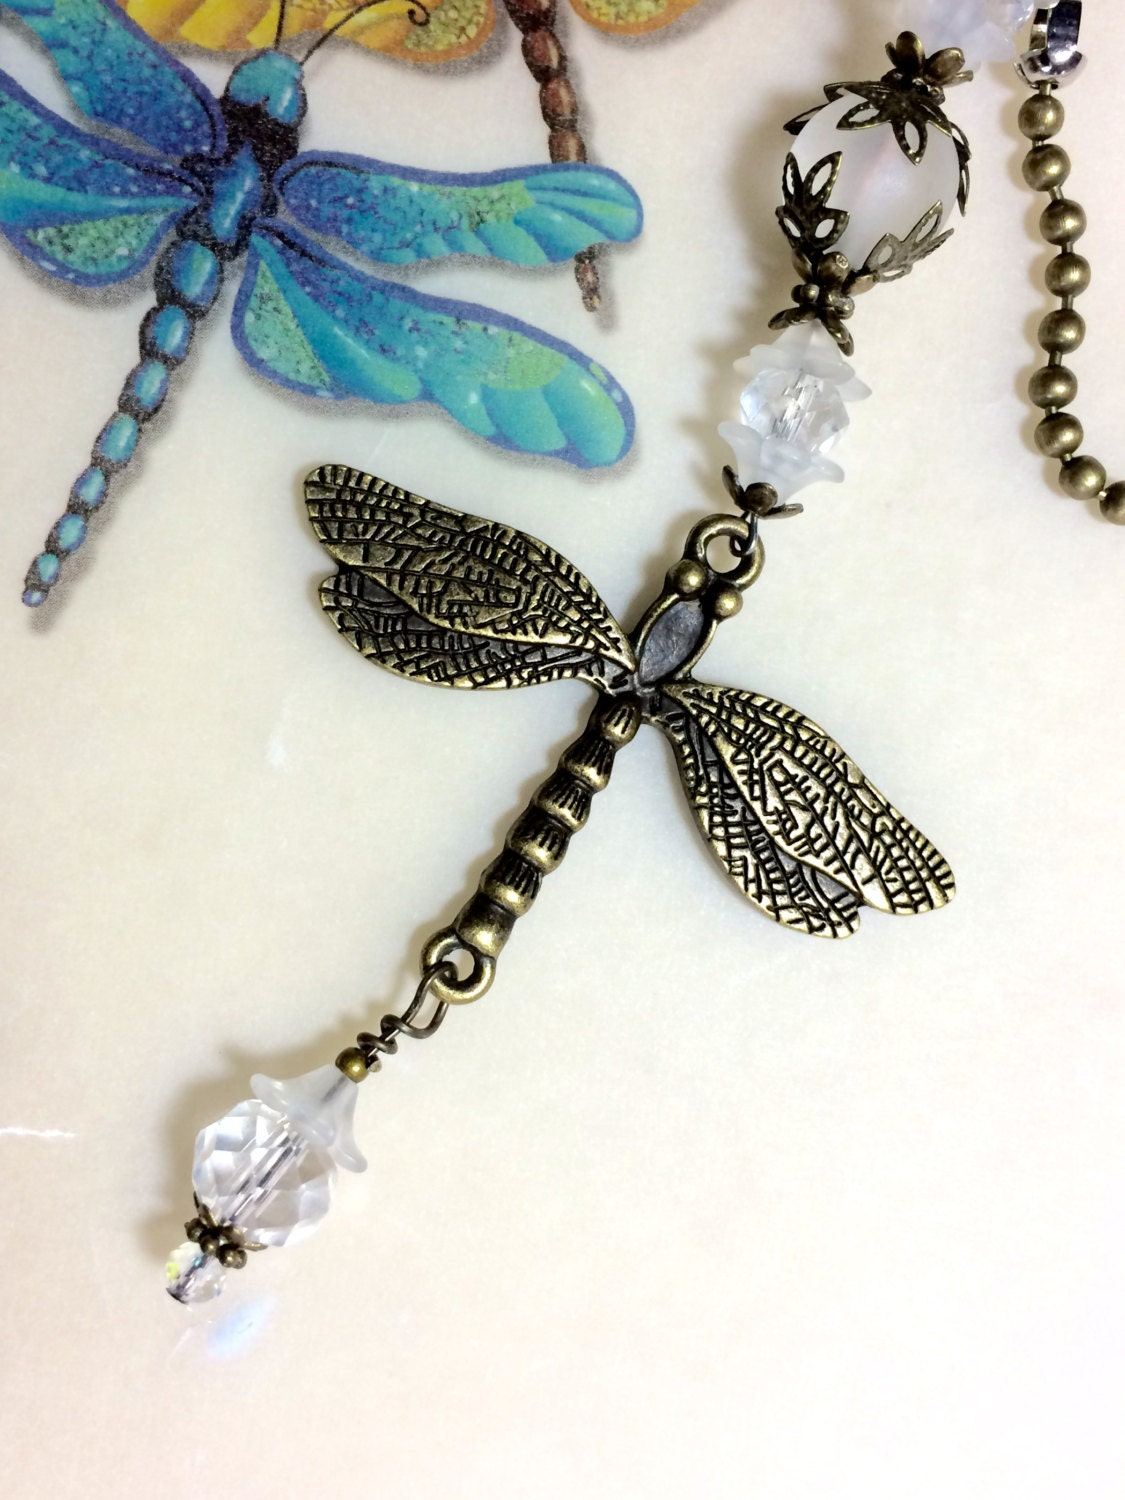 Dragonfly Pull Chain Light Pull Ceiling Fan Pull Ball Chain